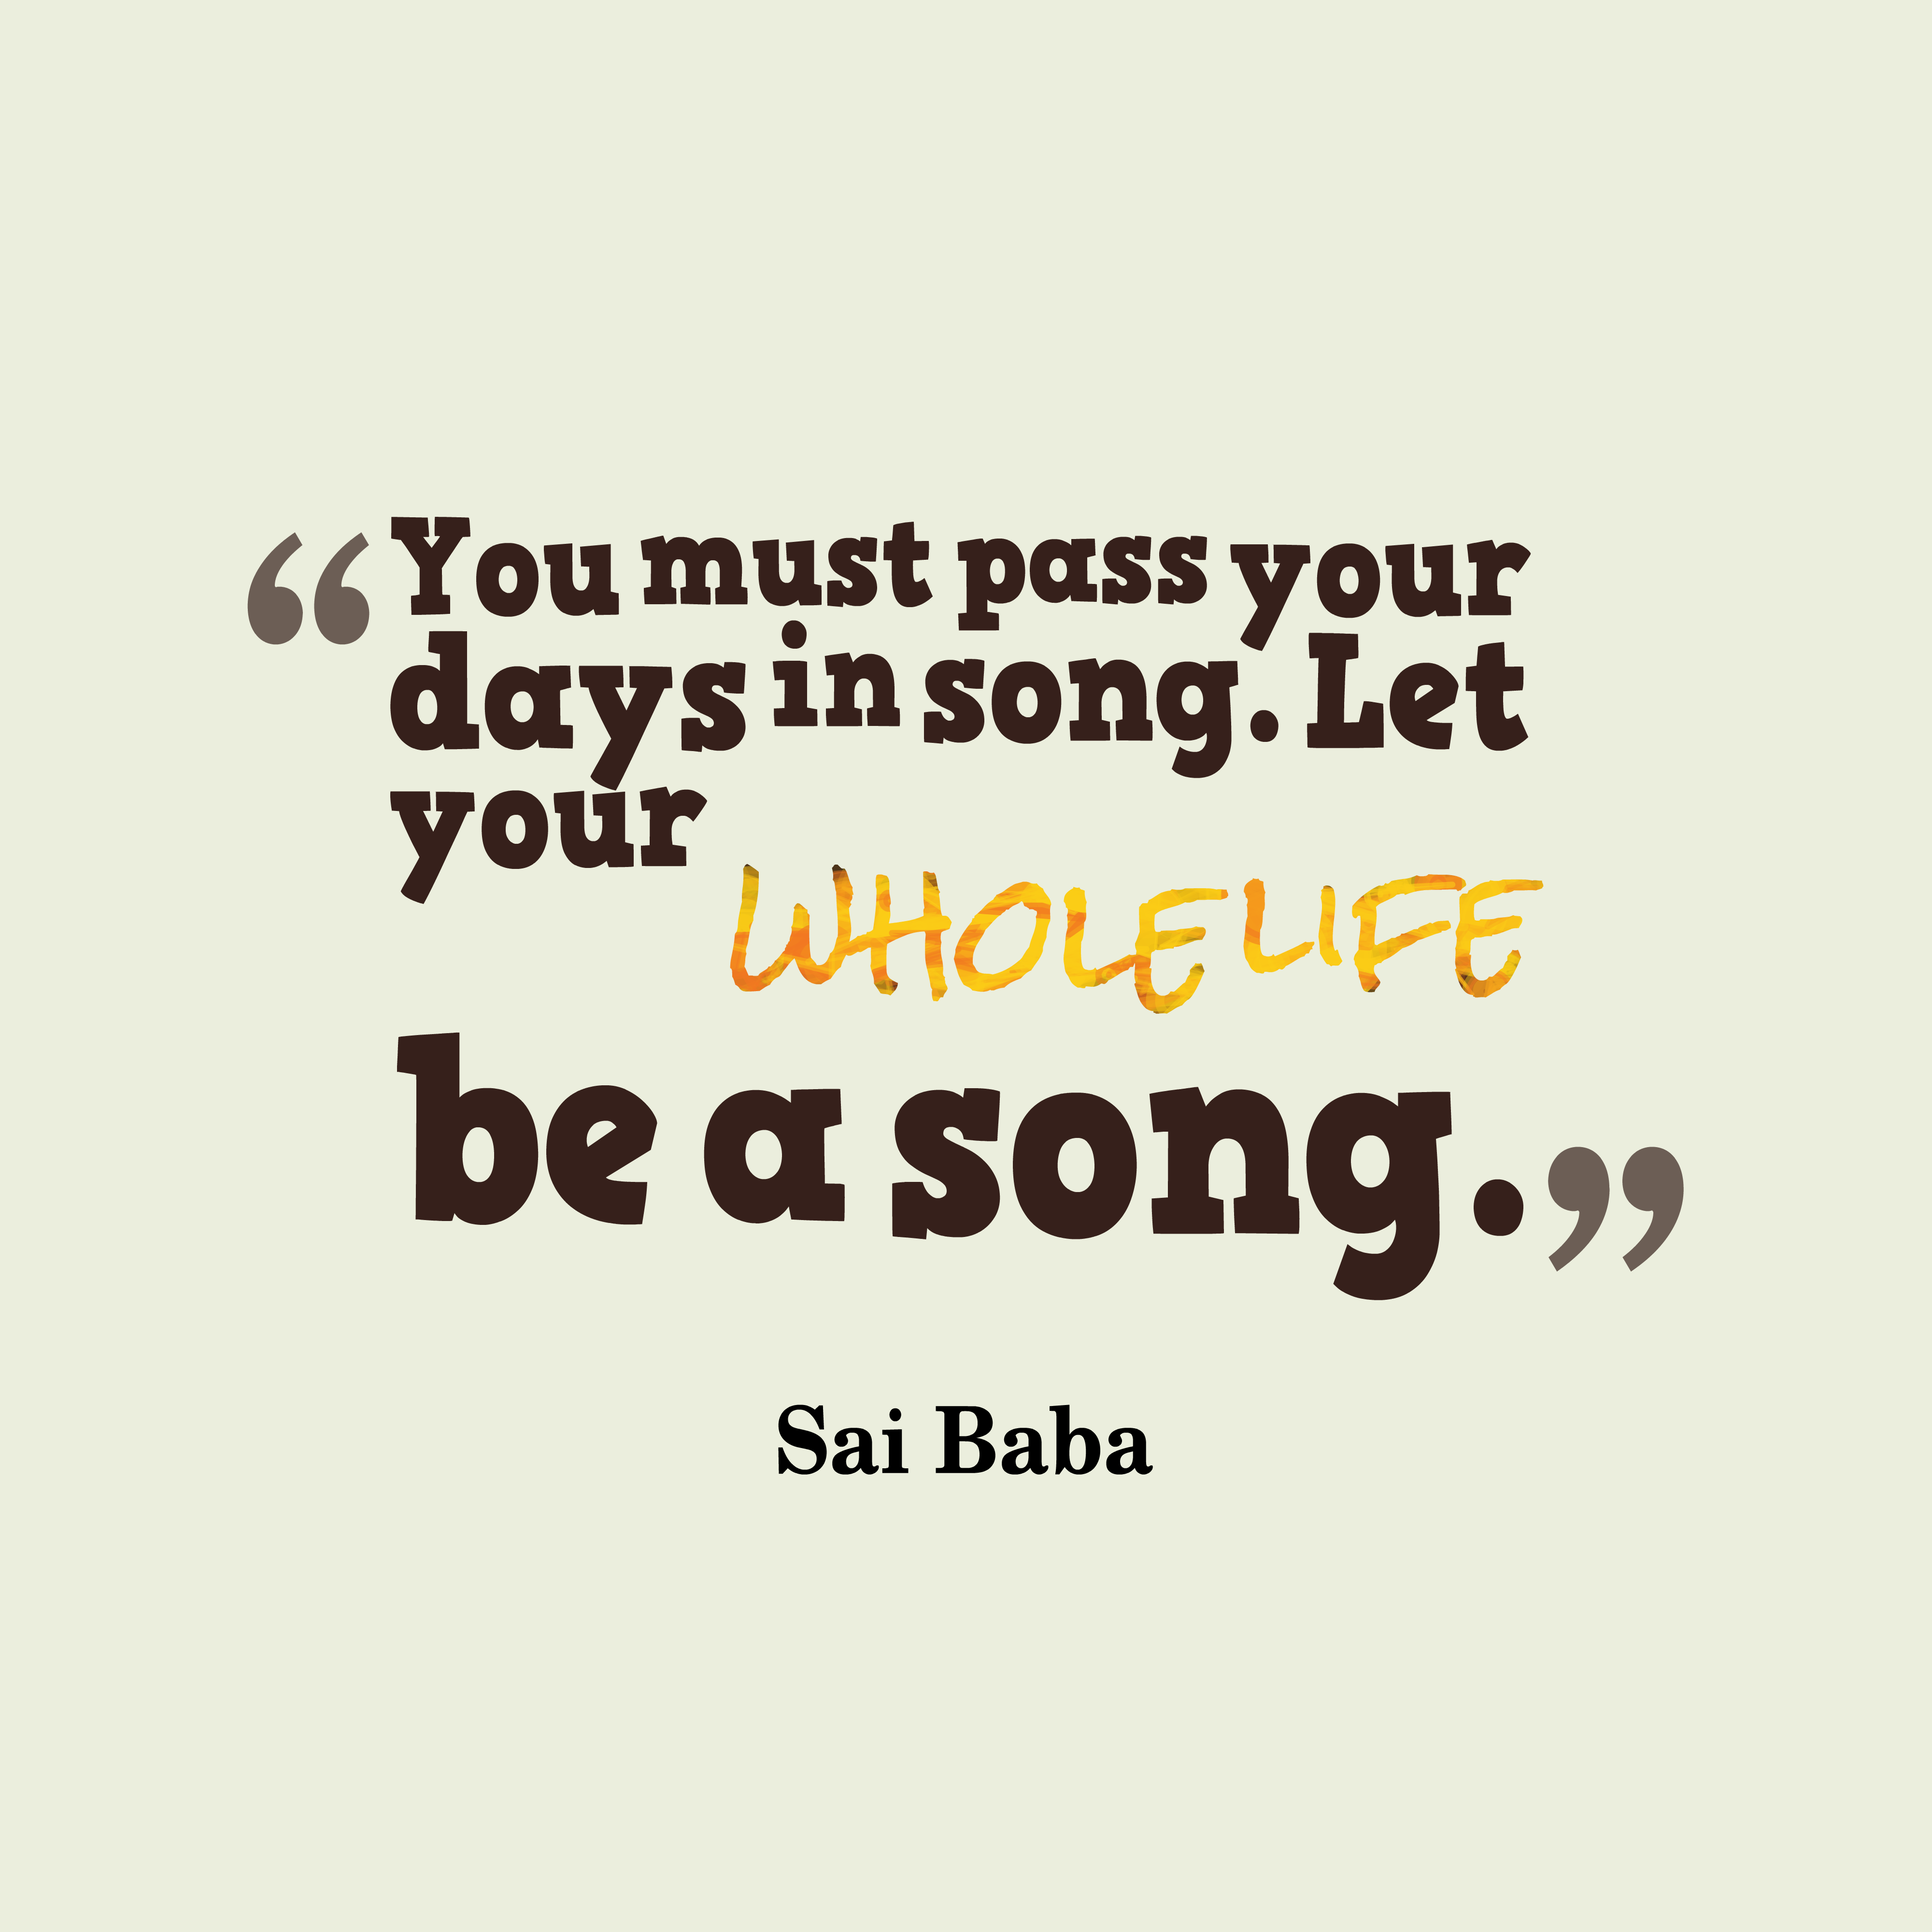 Sai Baba Quote About Music